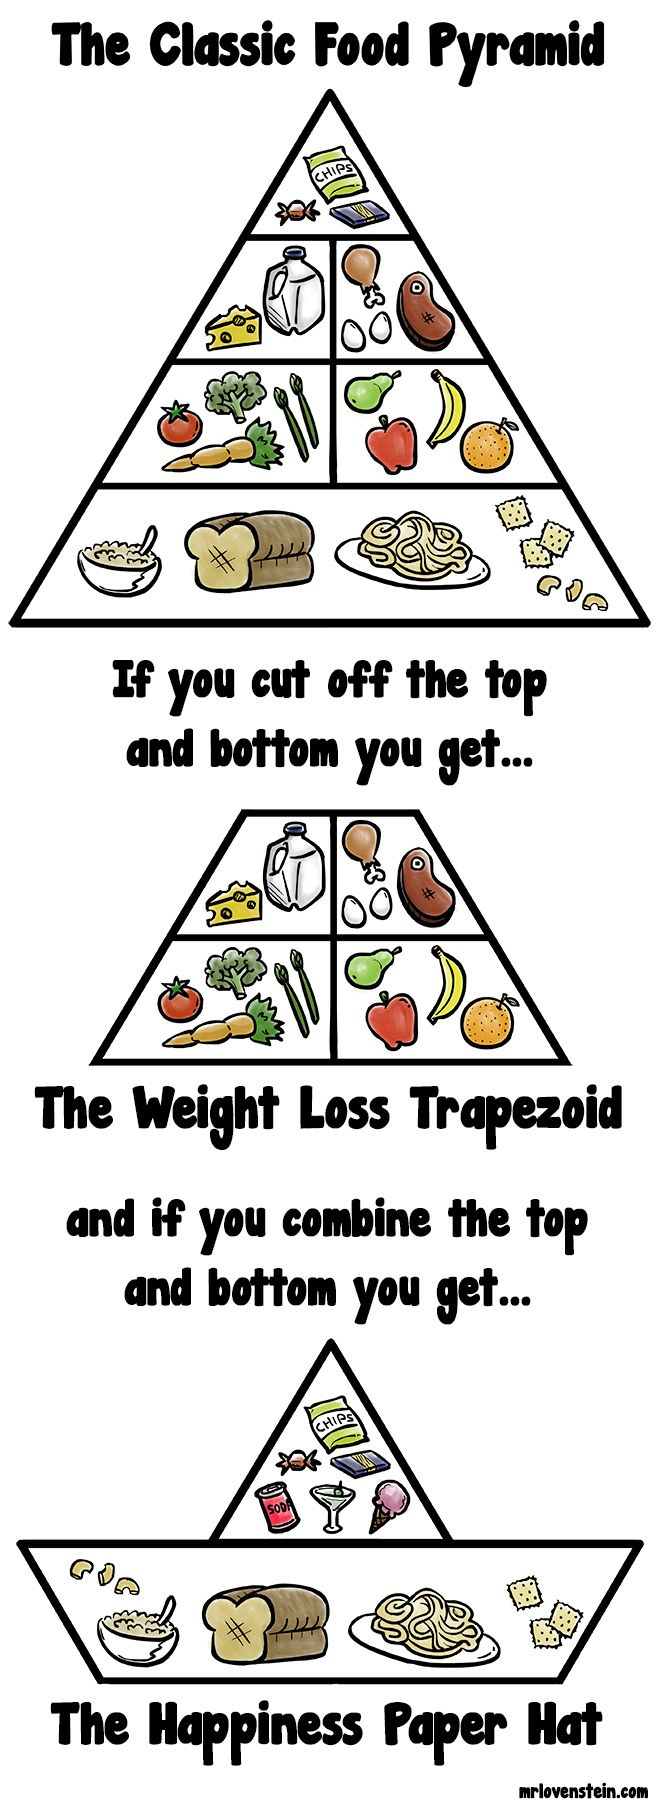 The various Food Pyramids.